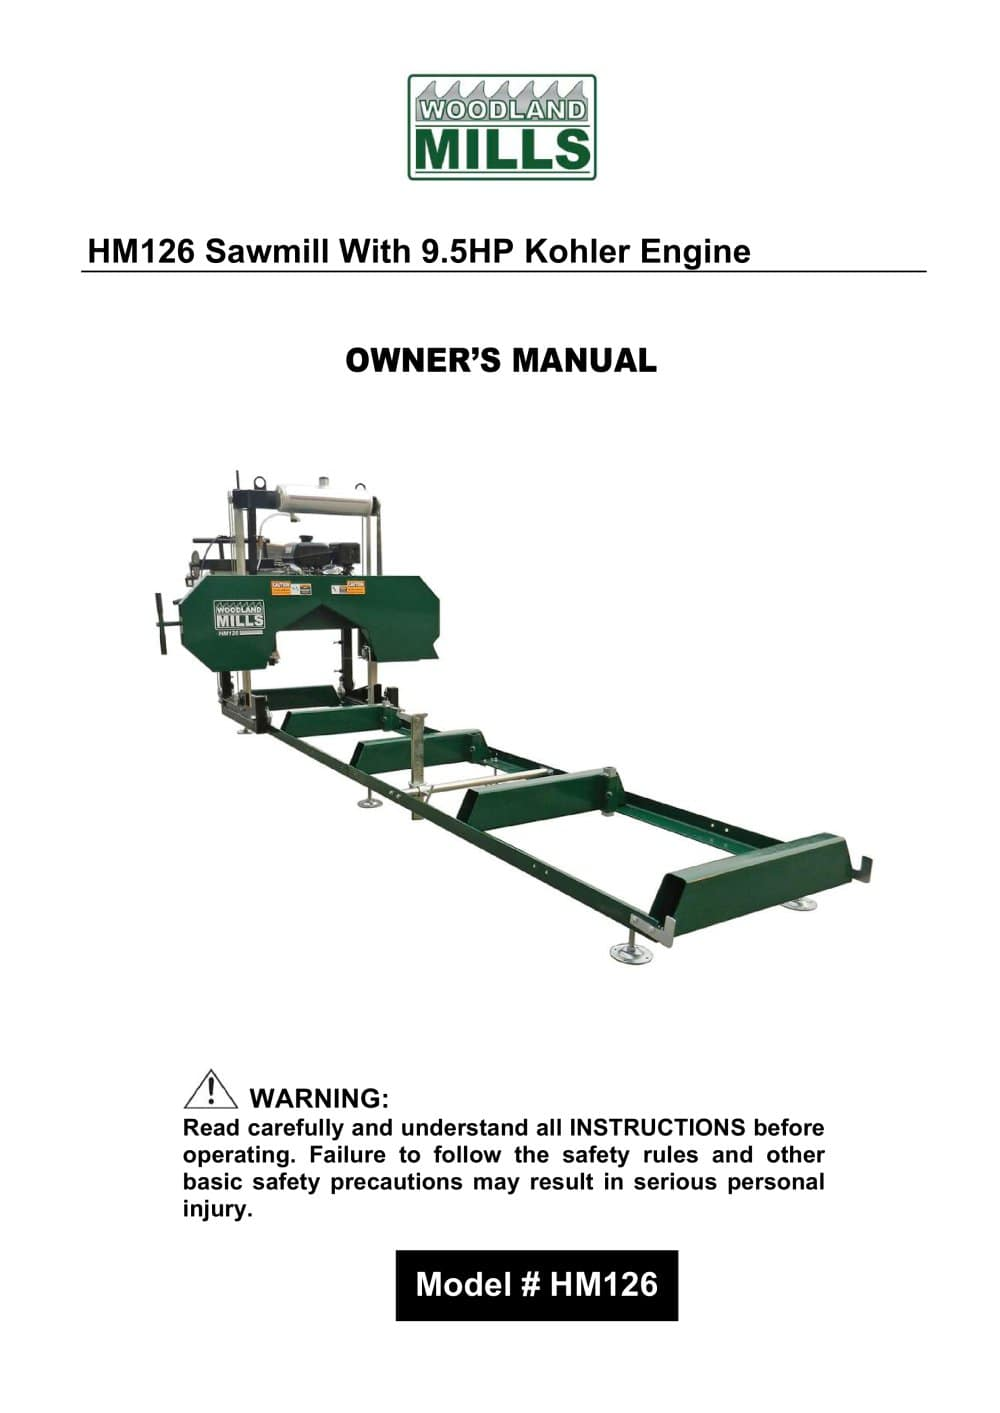 HM126 Sawmill - 1 / 43 Pages